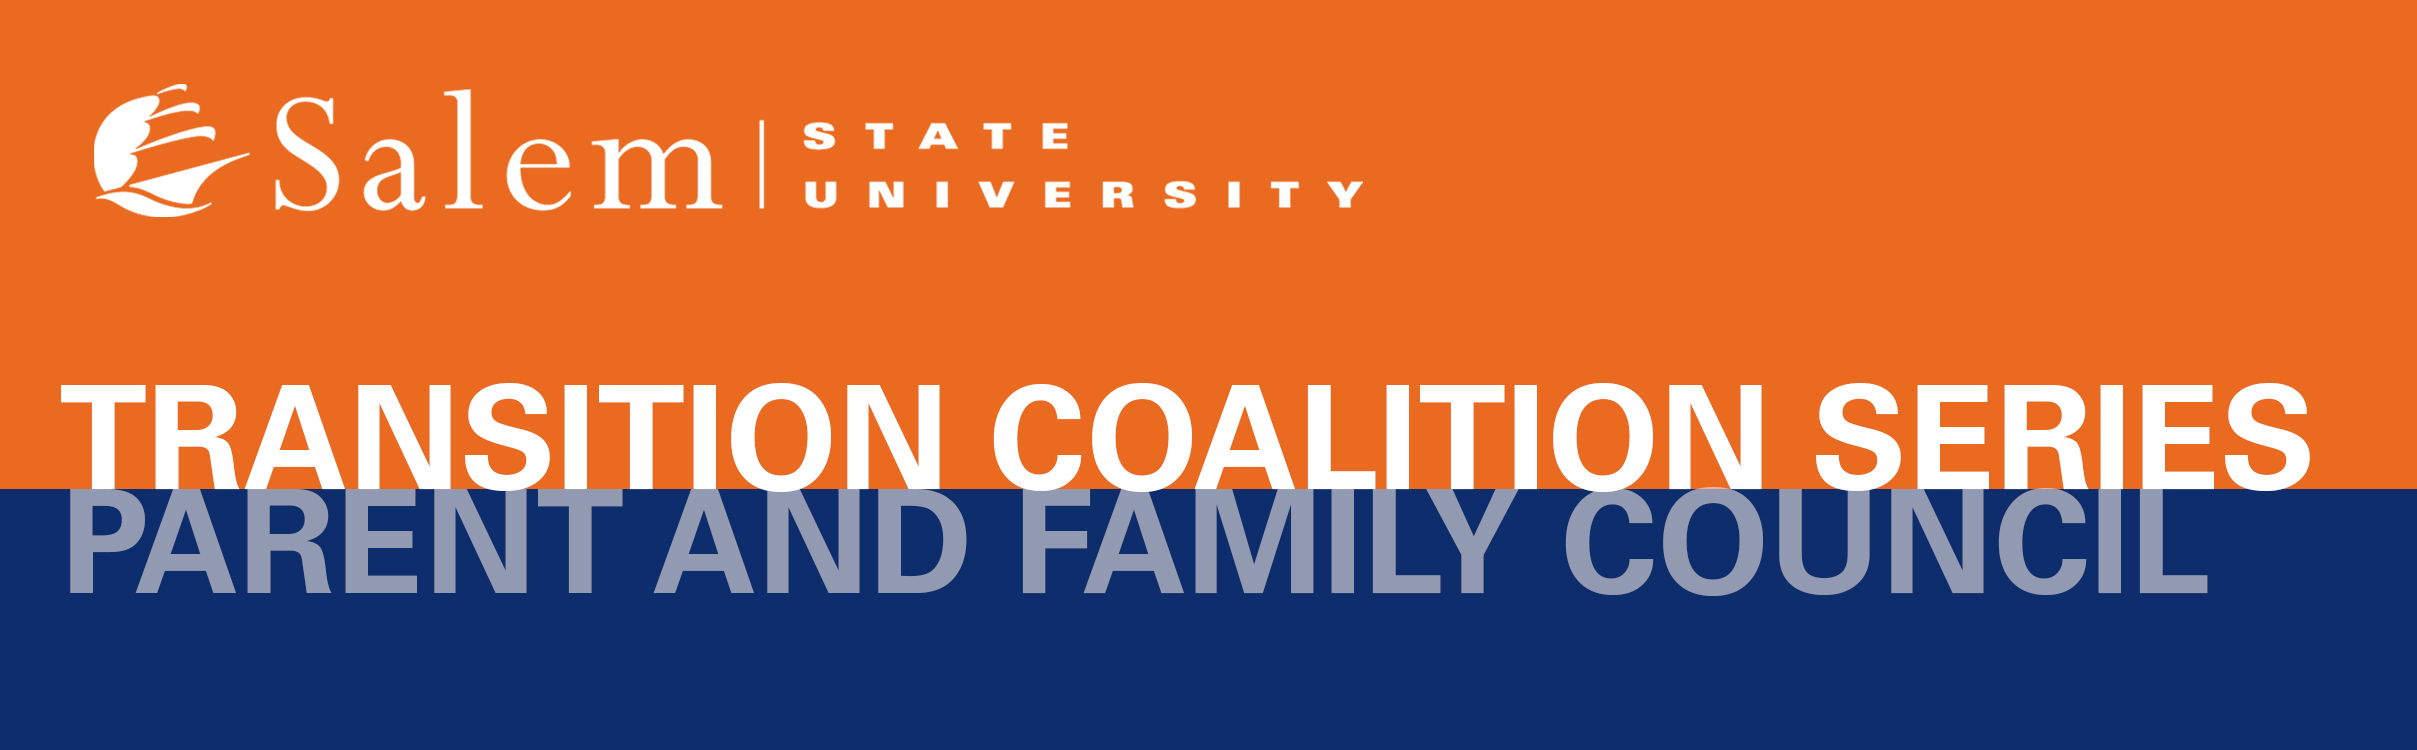 Parent and Family Council Transition Coalition Series graphic